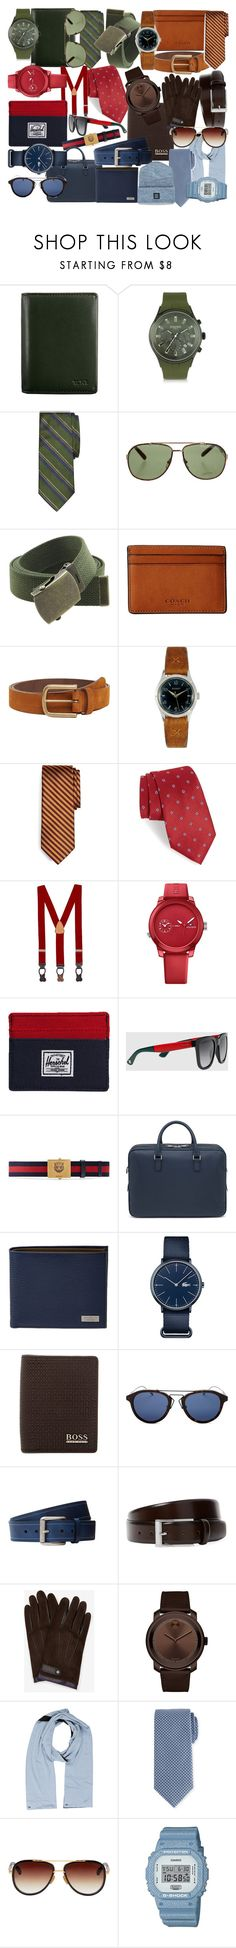 """""""Men's Colour Trend"""" by grae-hartmann on Polyvore featuring Tumi, Forzieri, Brooks Brothers, Tom Ford, Coach, MANGO, Throne, Nordstrom, Tommy Hilfiger and Herschel Supply Co."""